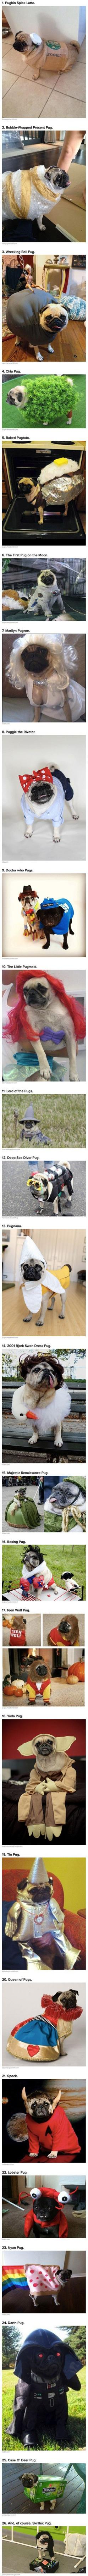 Ha! Several of these are past participants in the annual OHS Pug Crawl. :): Poor Pug, Pug Costumes, Giggle, Funny Dog Costume, Funny Pugs, Pug Life, Funny Dog Halloween Costumes, Animal